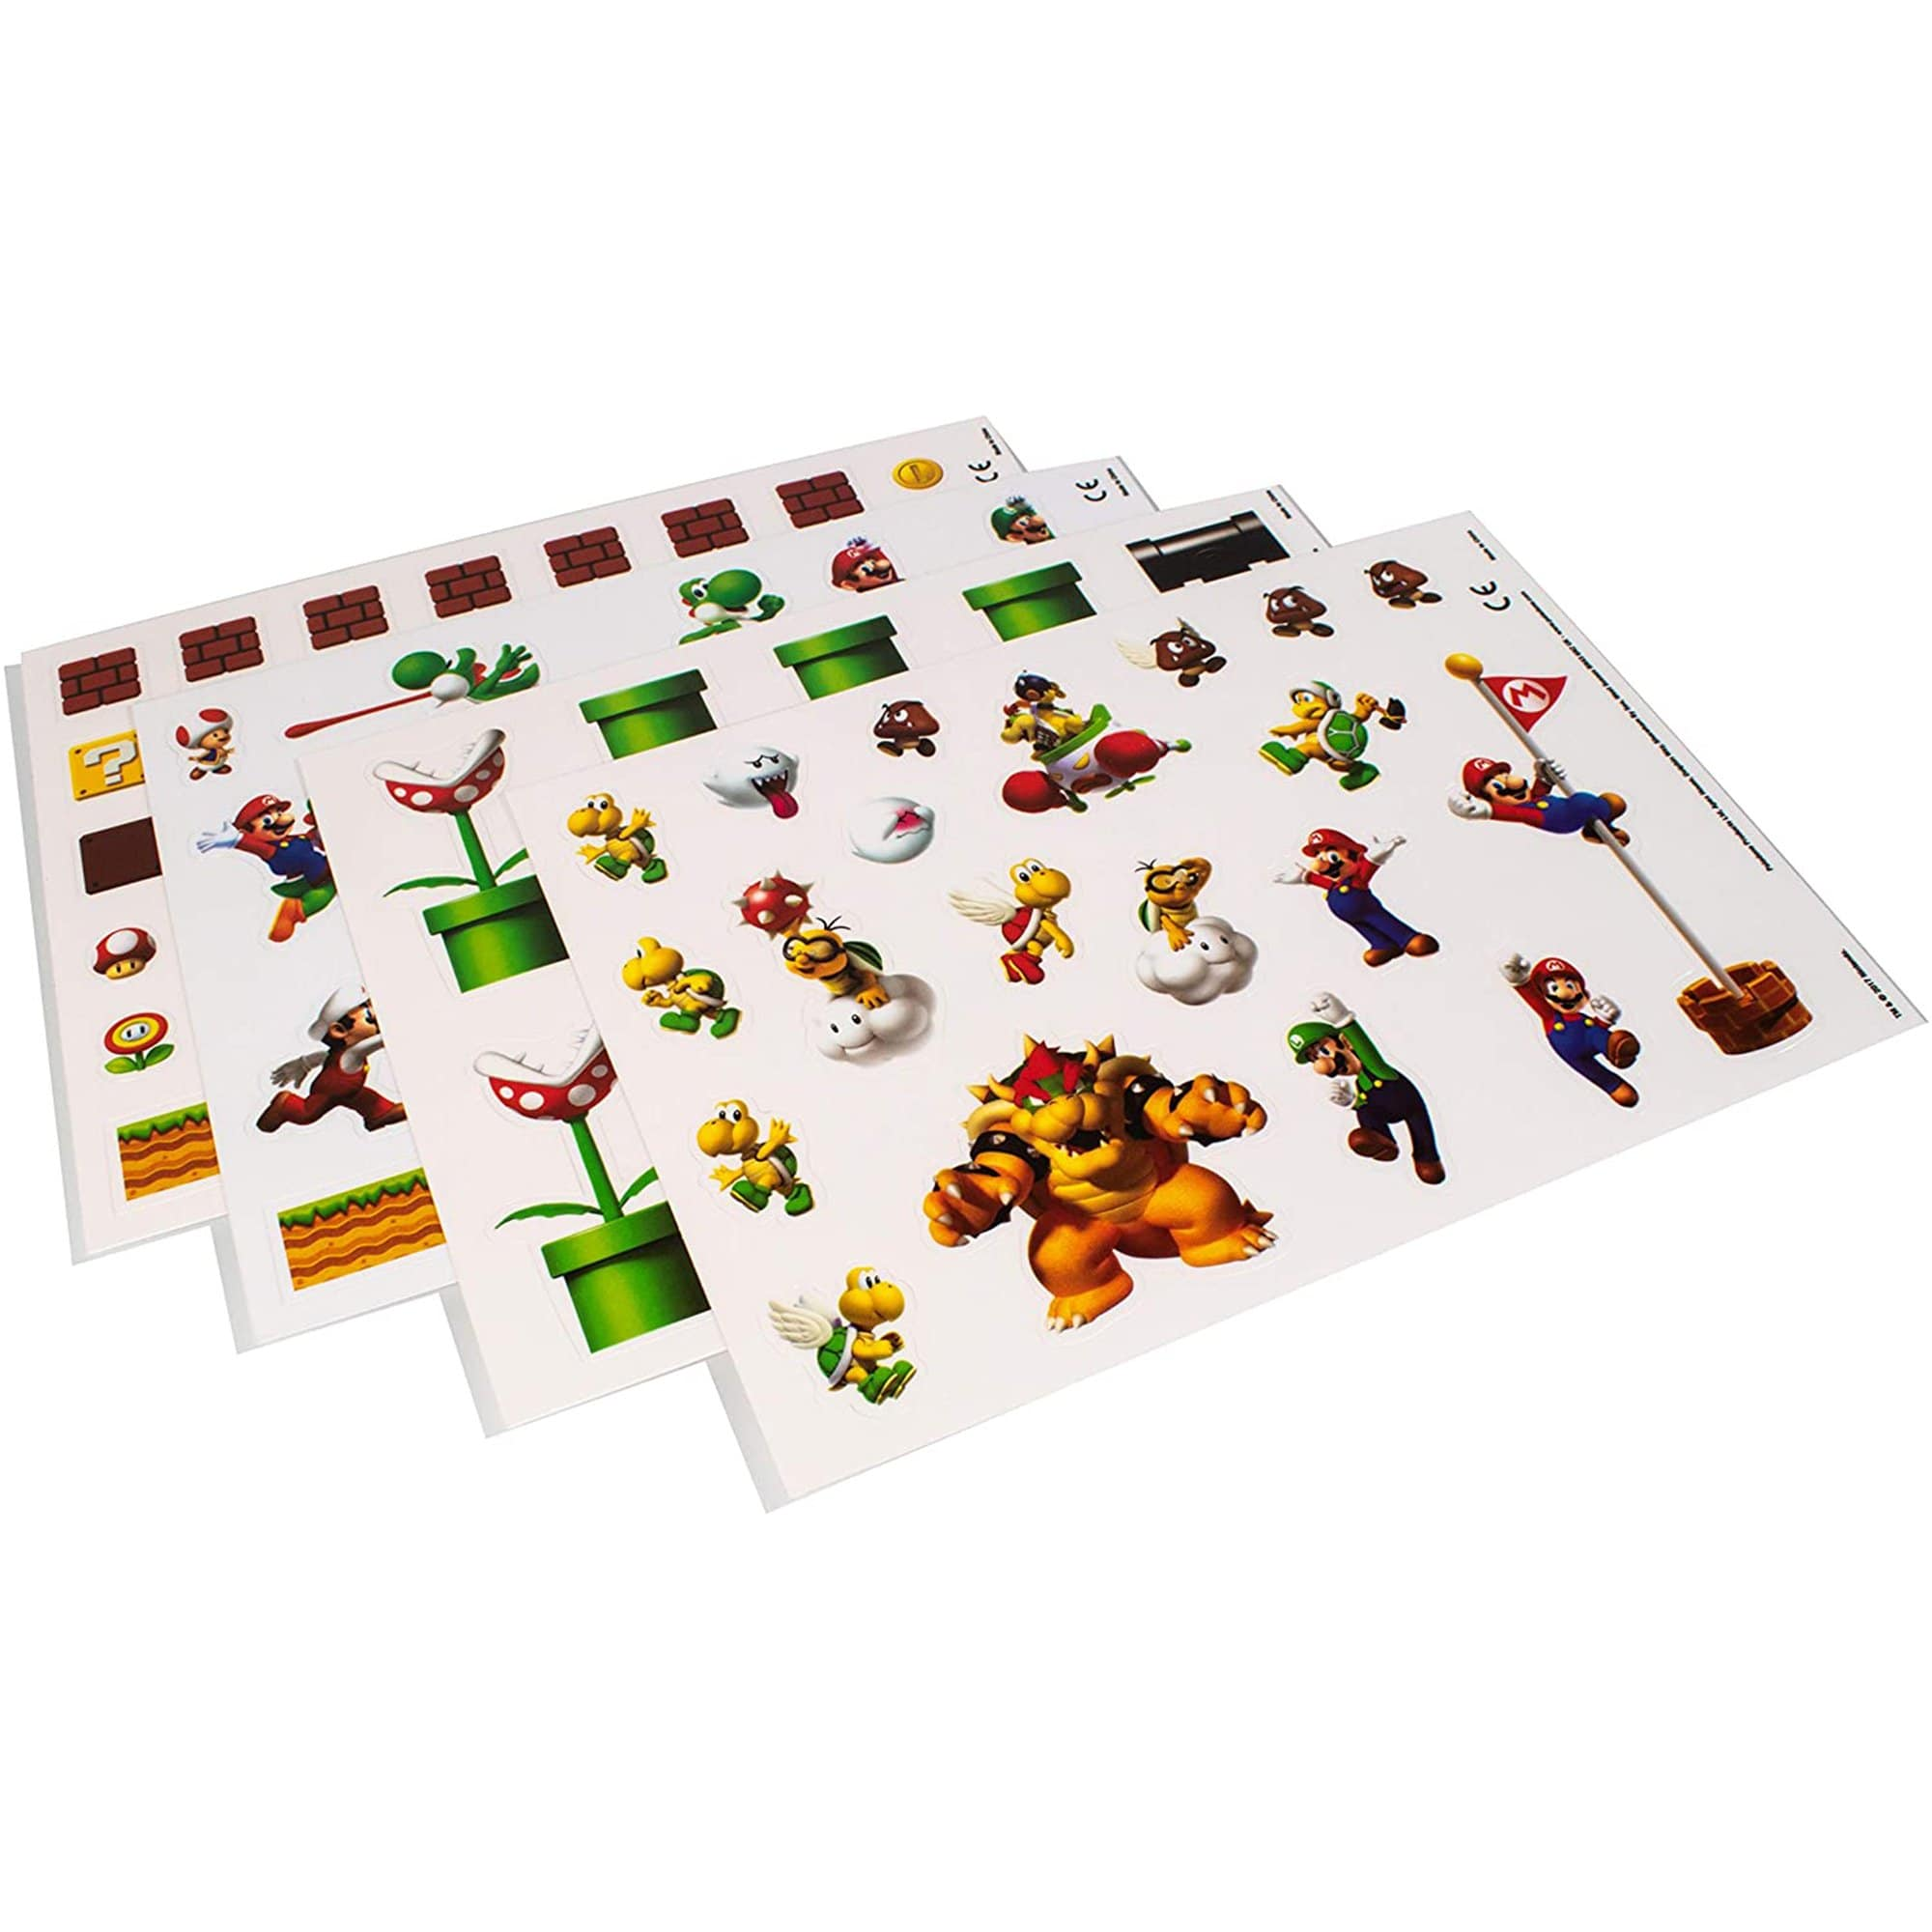 Super Mario Gadget Decals made by Paladone, sold by HIDEit Mounts.